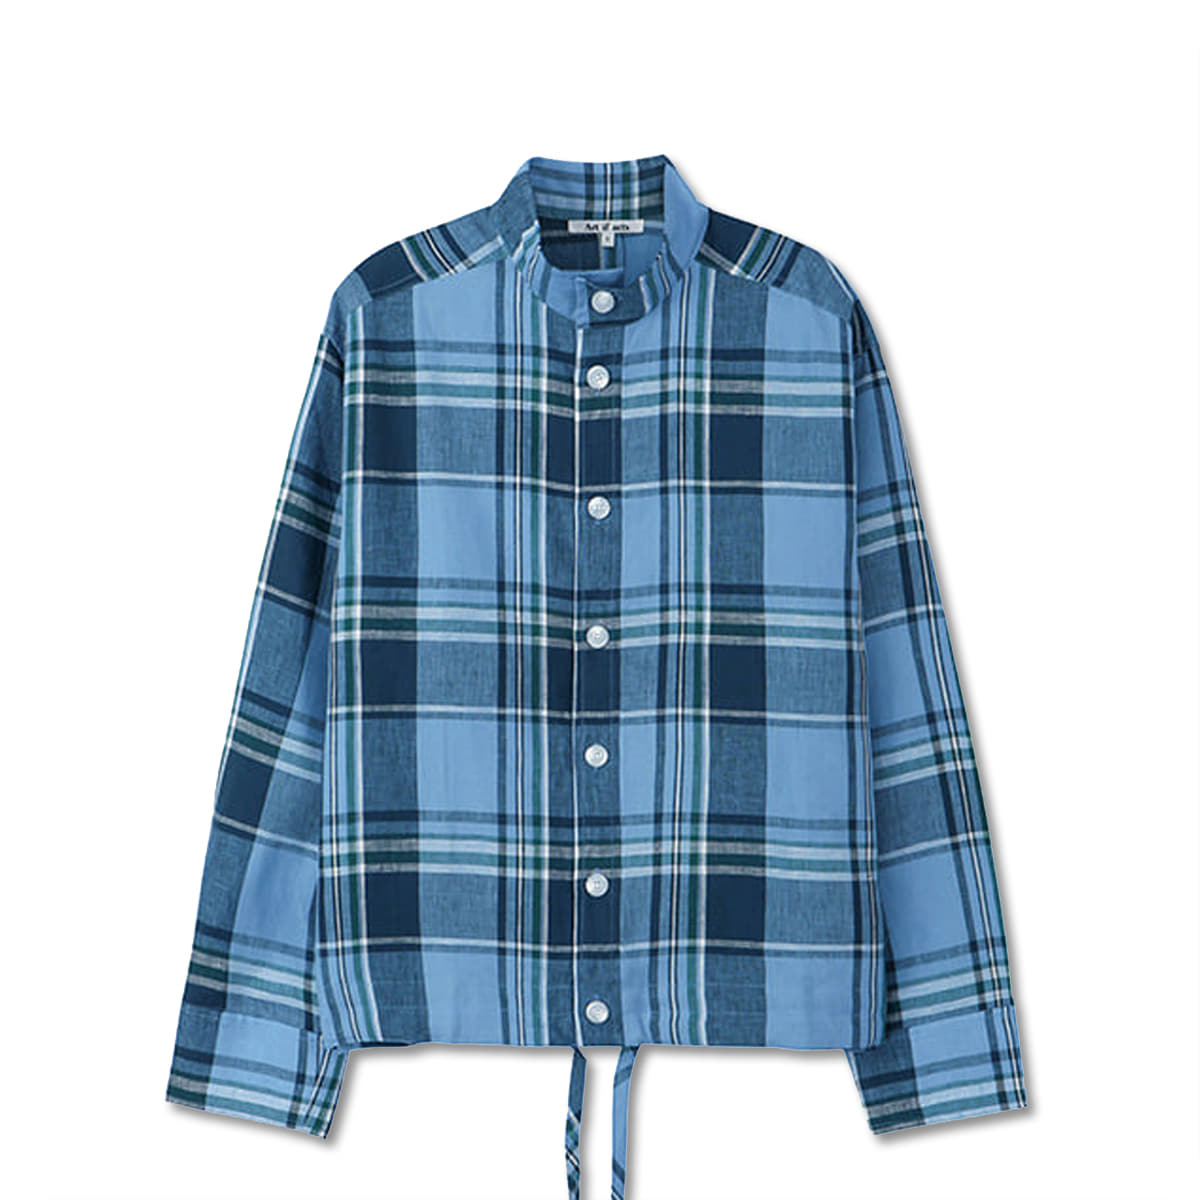 [ART IF ACTS] STAND COLLAR SHIRTS 'CHECK BLUE'